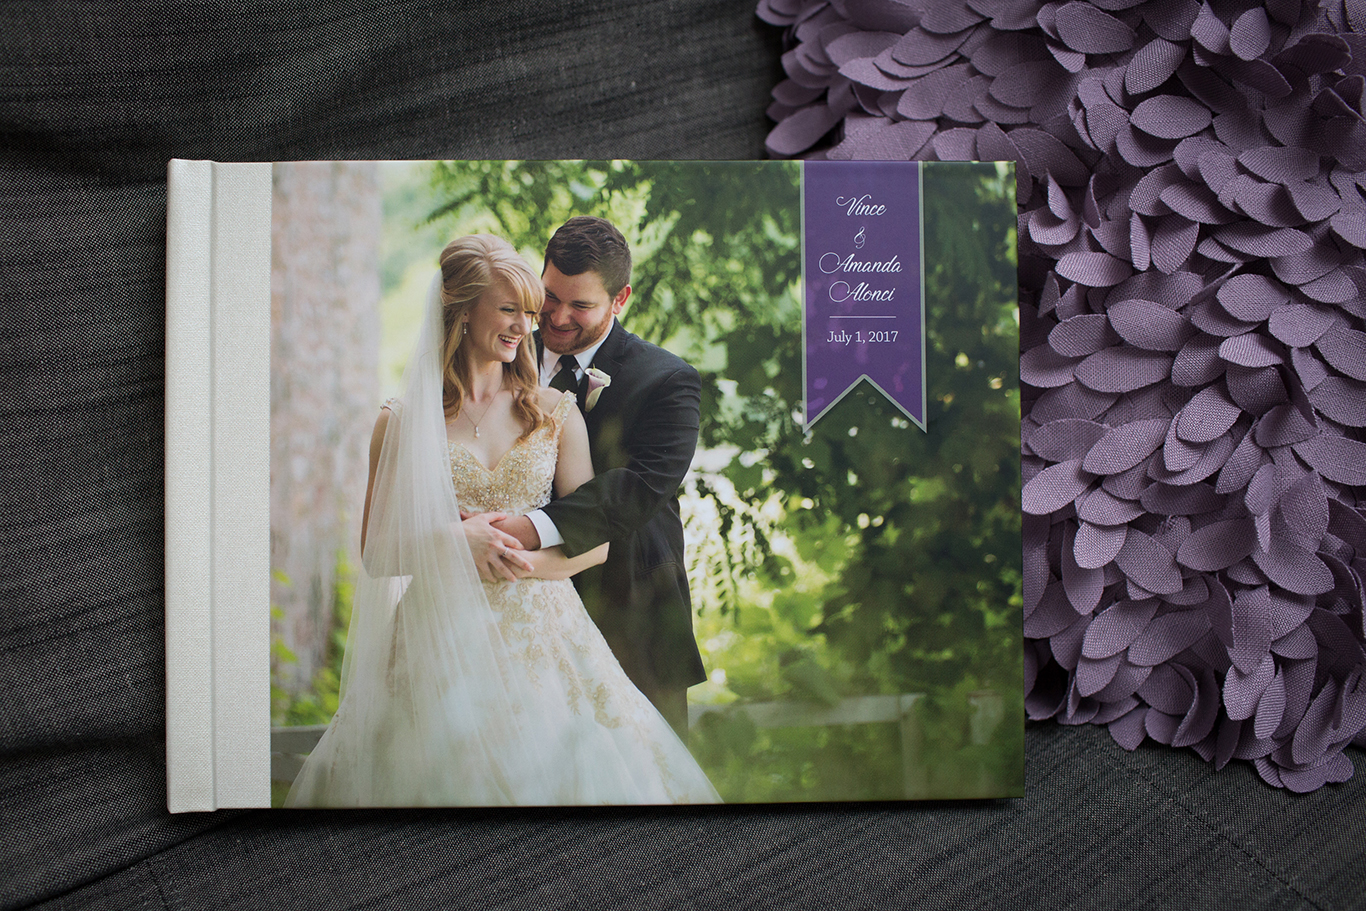 By far our most popular album style. It is a stunning 12x9 presentation to match your beautiful wedding! It is an heirloom that will keep your memories safe and vibrant for generations.